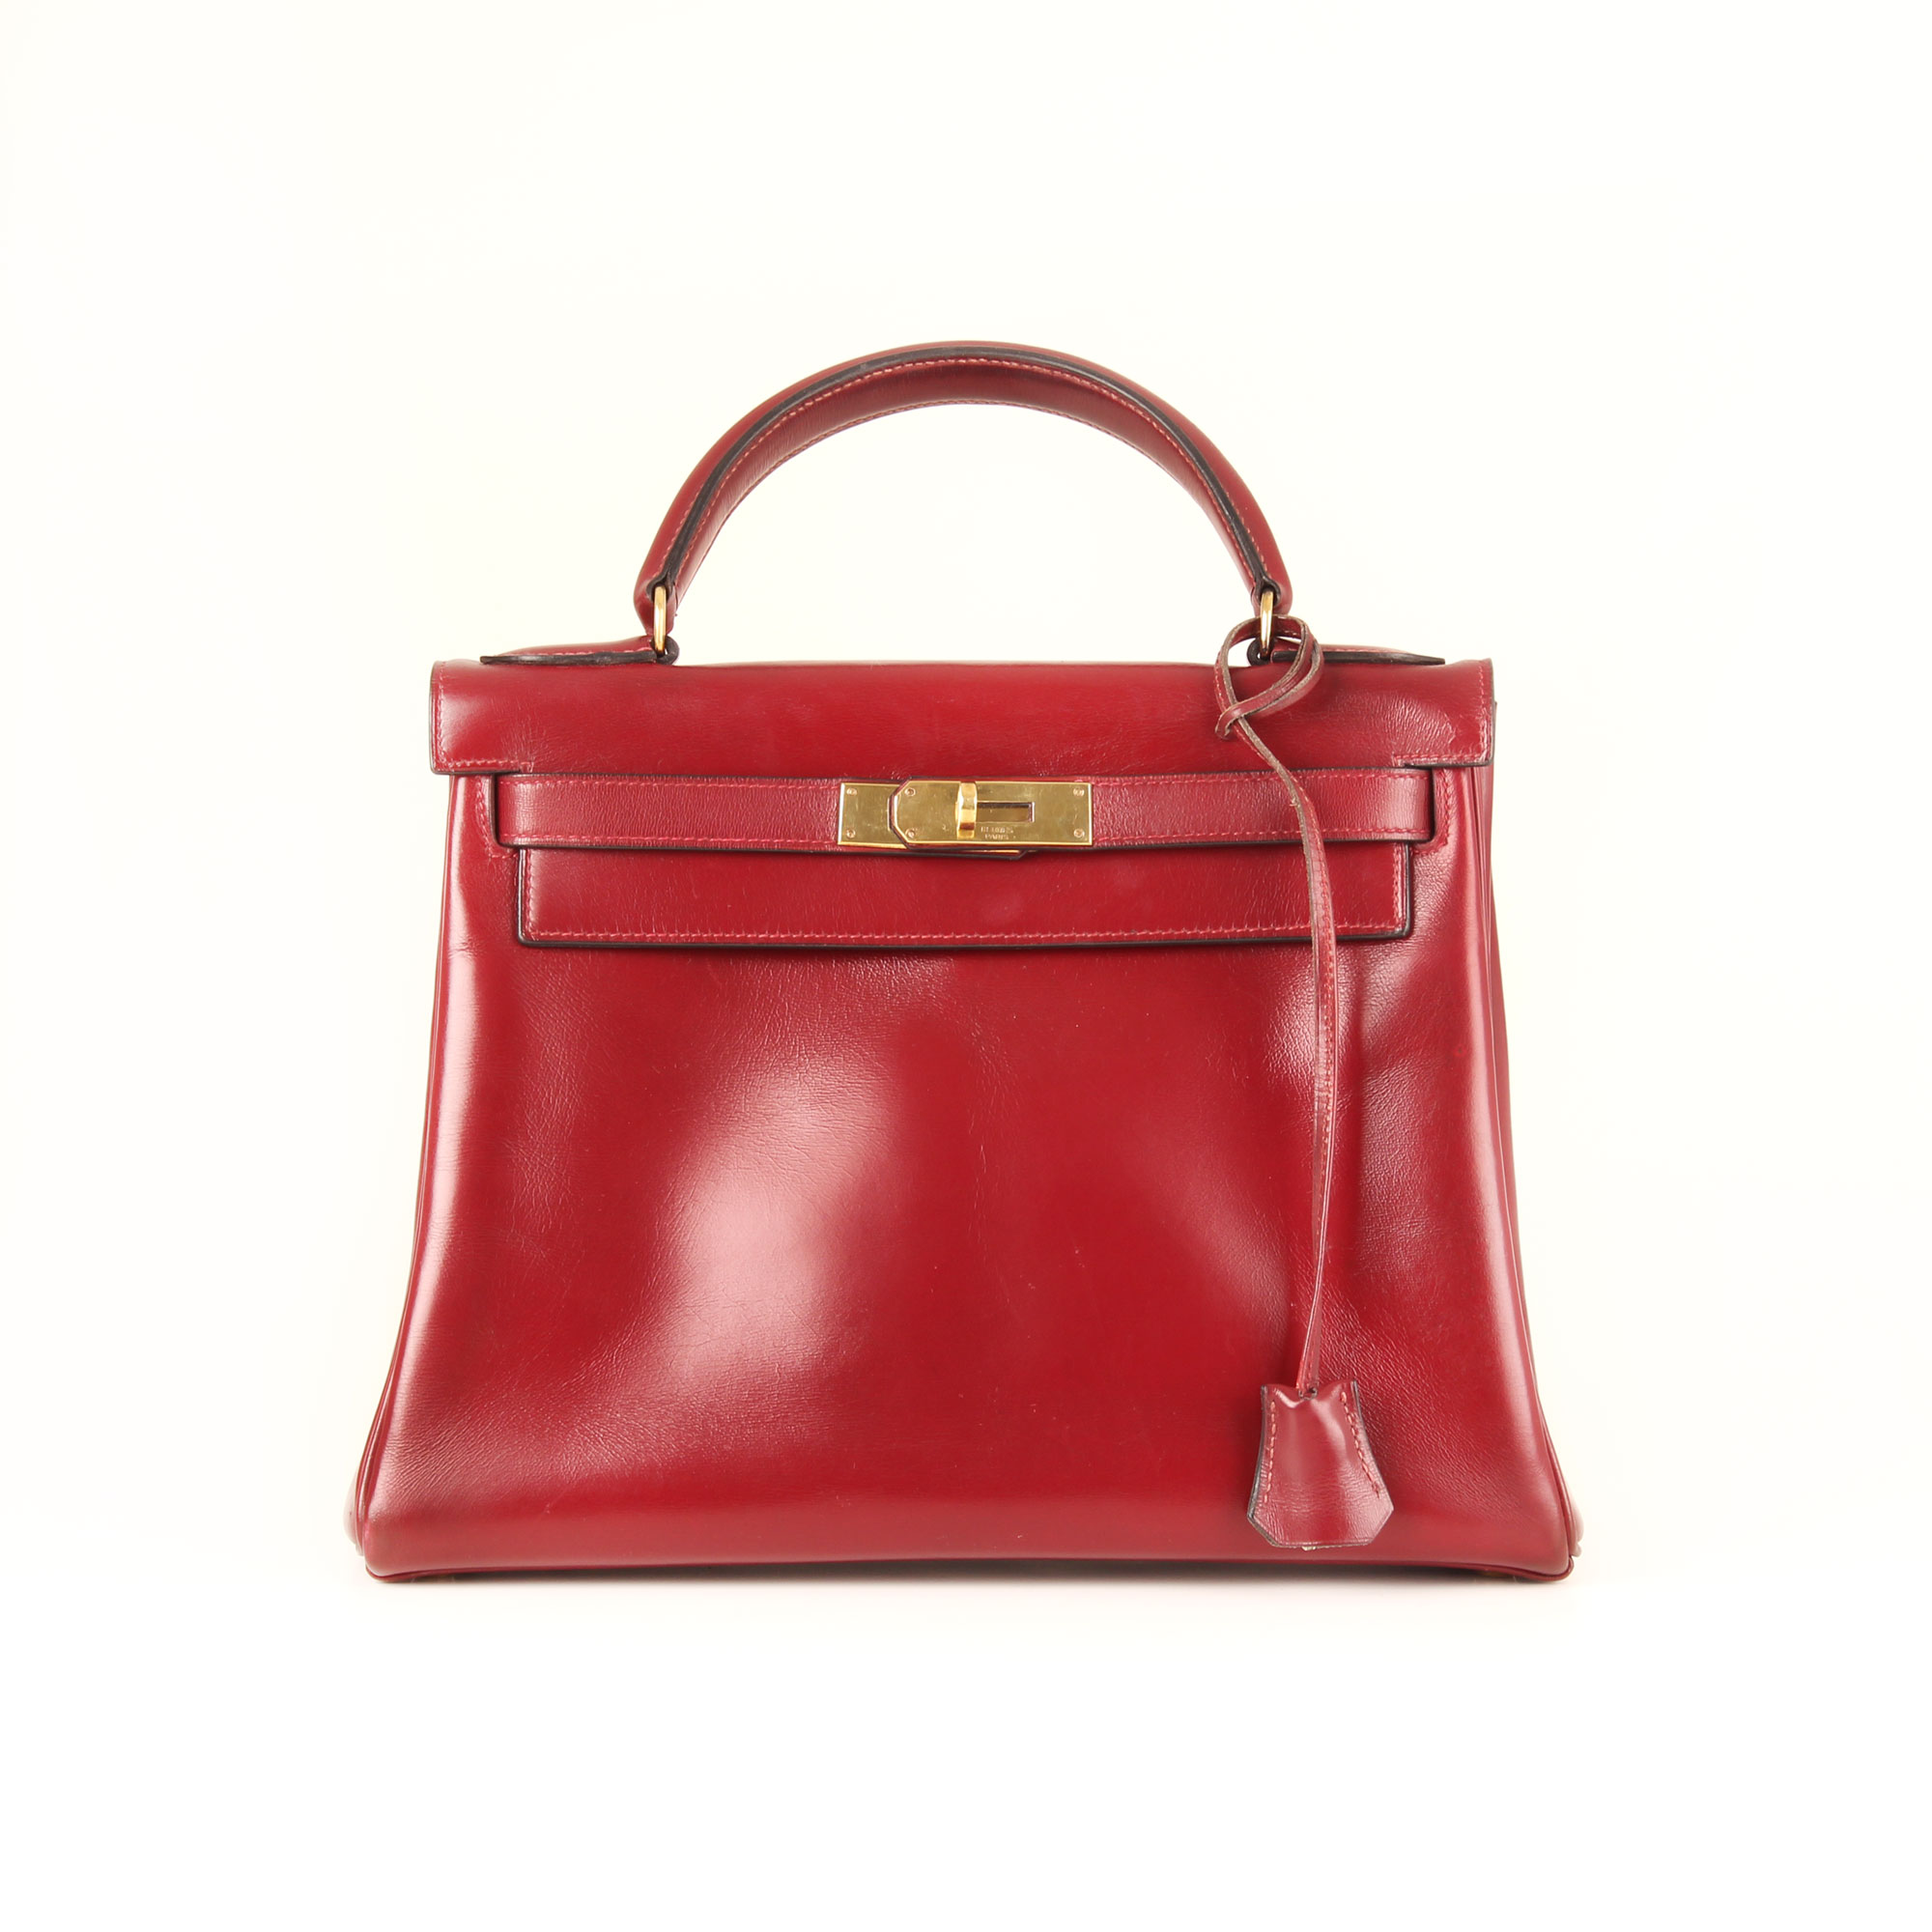 361a8c44d54 ... hss rouge tomato epsom sellier ghw stamp a luxury bags e1a41 f2d96;  france bag hermes kelly 28 burgundy box calf front cb770 bf672